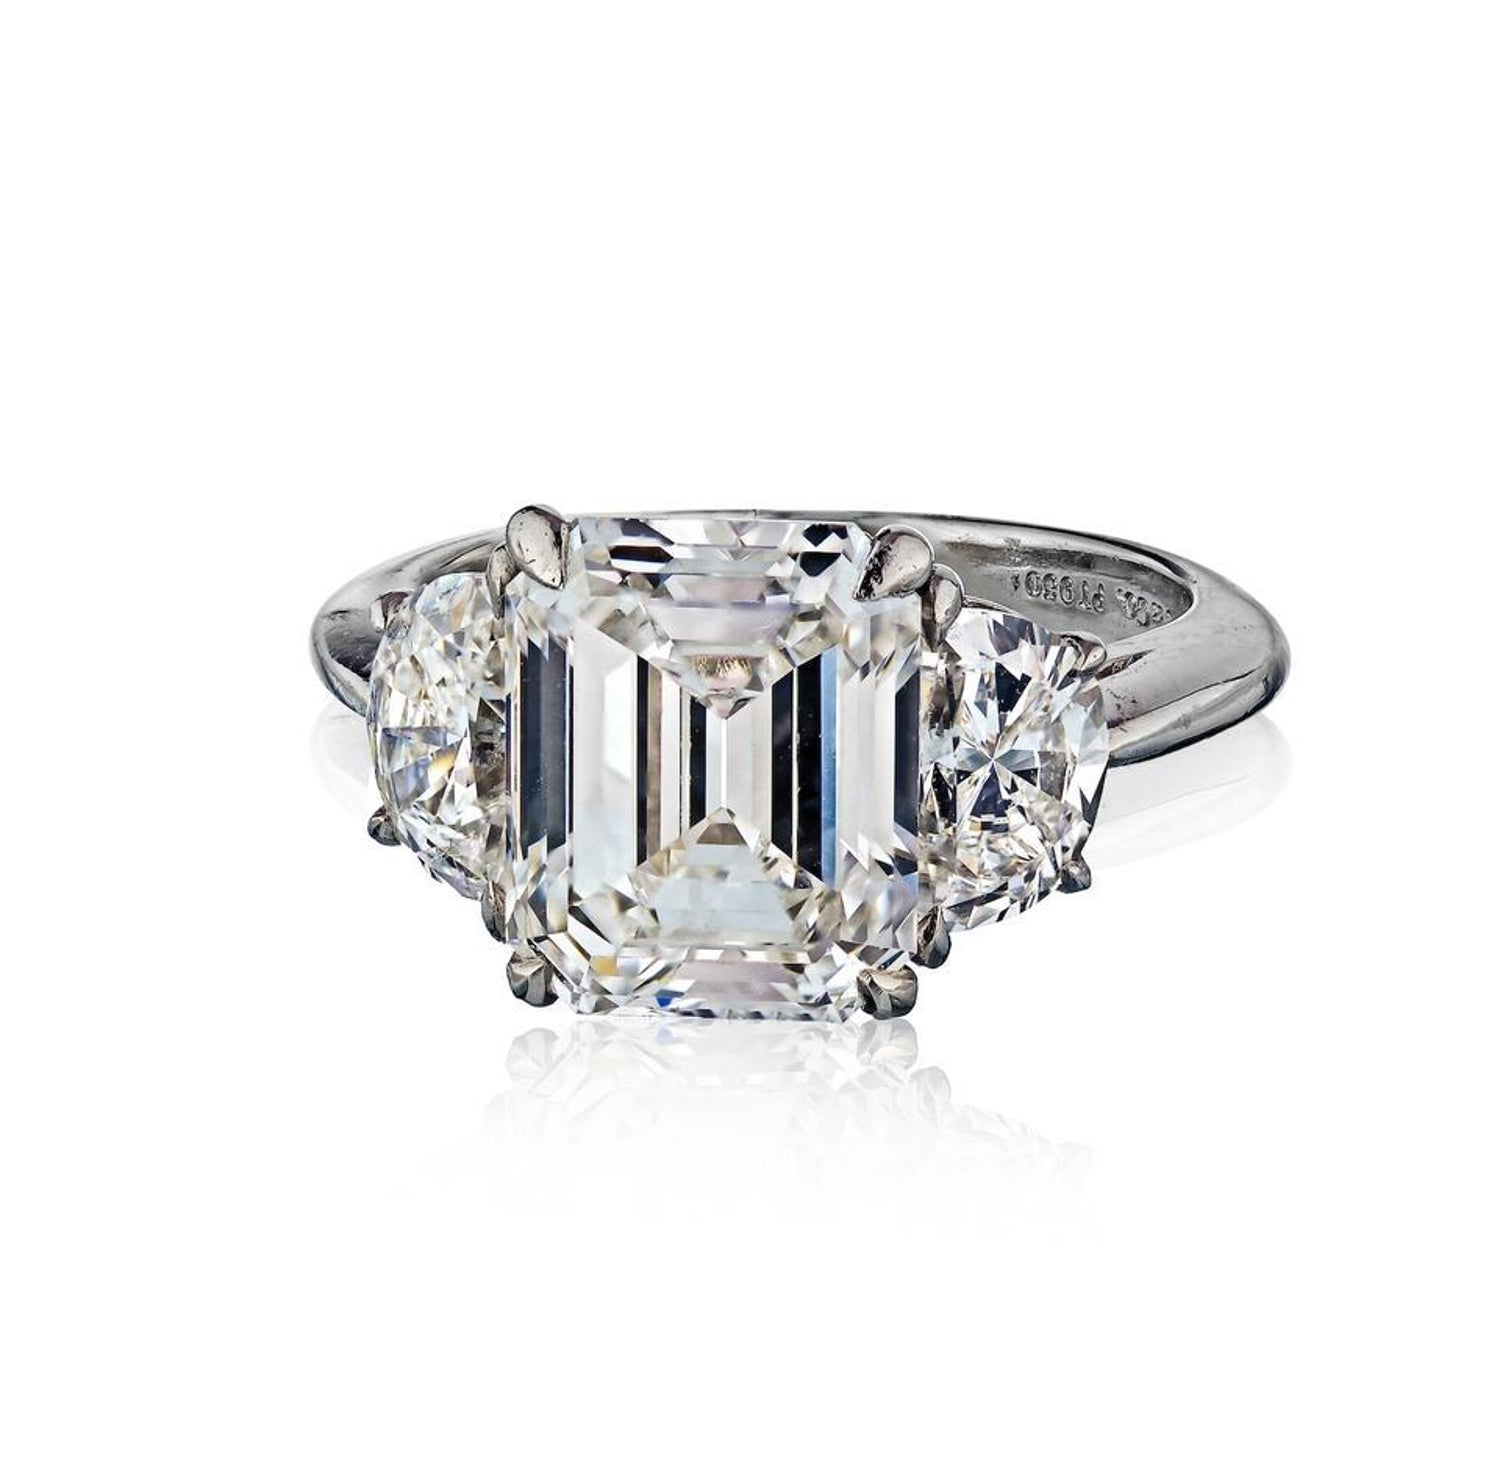 Tiffany And Co 3 33 Carat Emerald Cut Three Stone Diamond Engagement Ring For Sale At 1stdibs